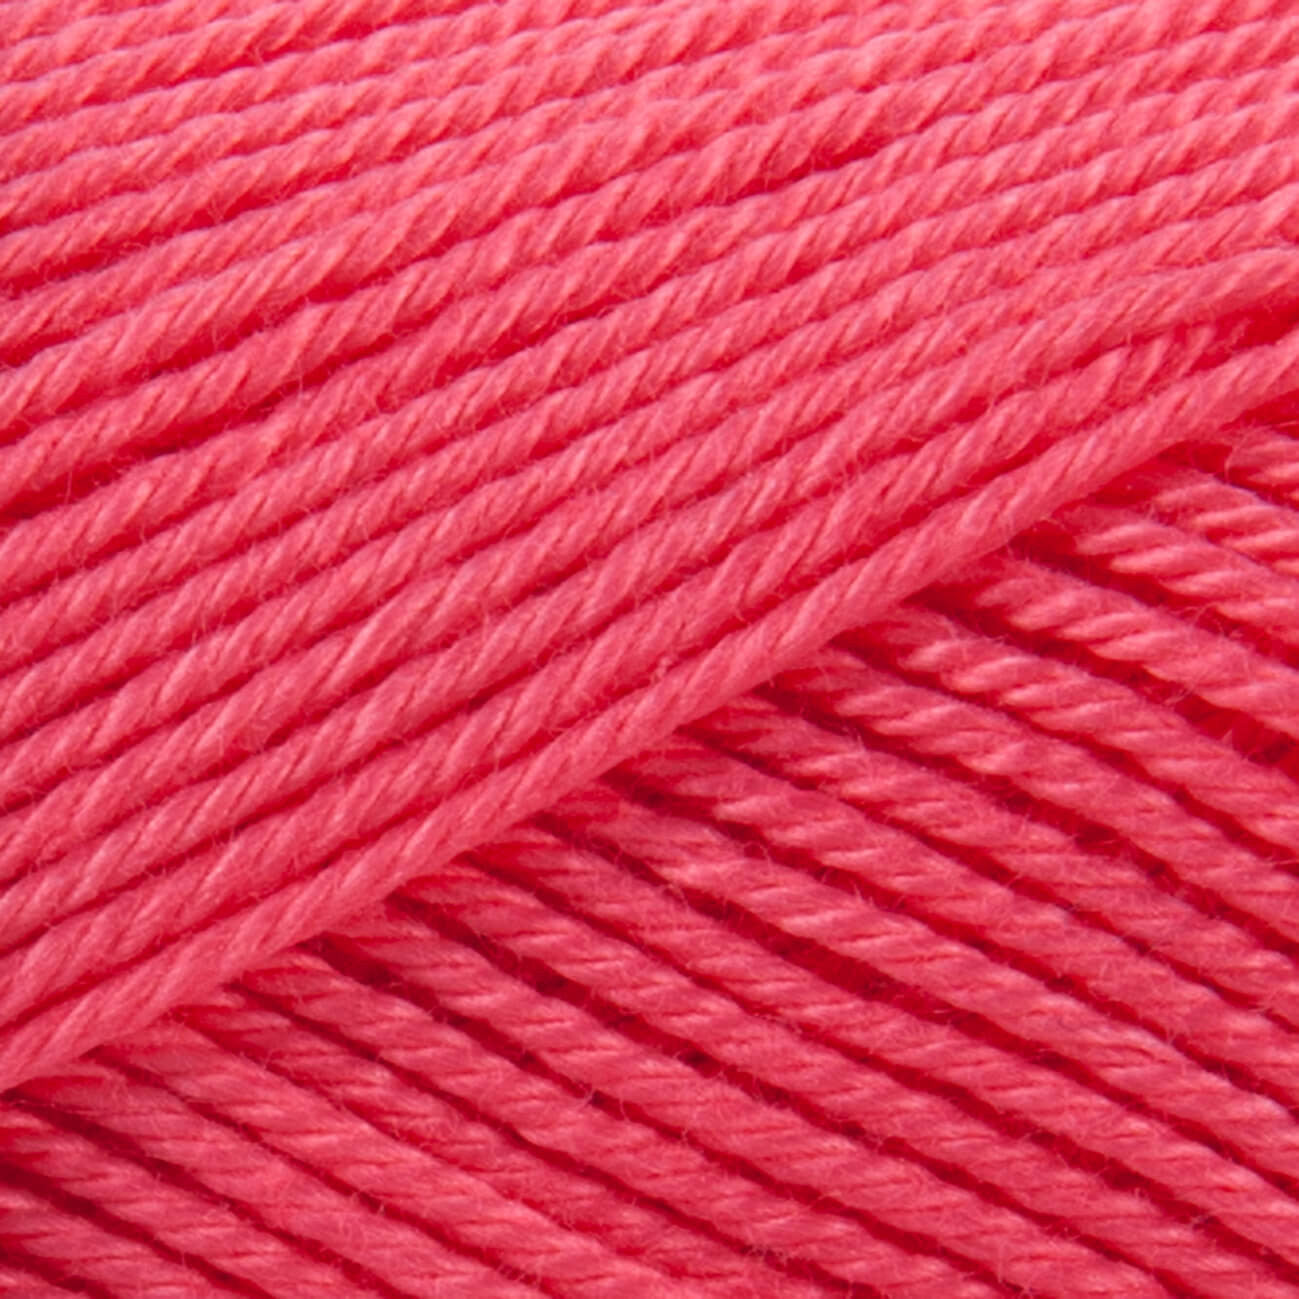 Patons Yarn 100/% Cotton 4 Ply 100g Ball Pomegranate